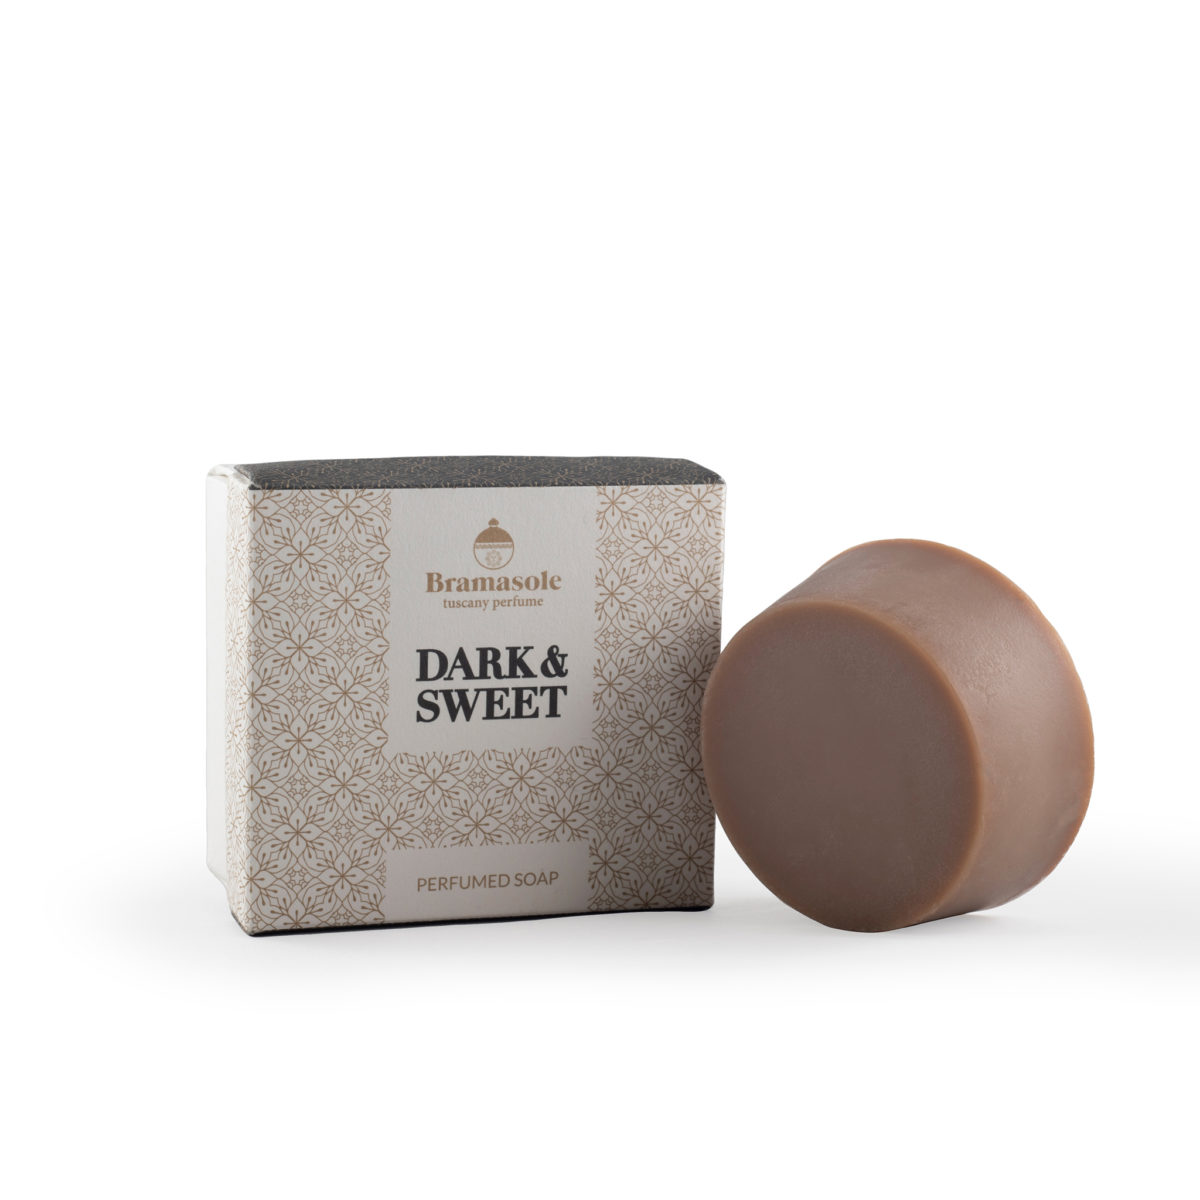 Dark & Sweet – soap